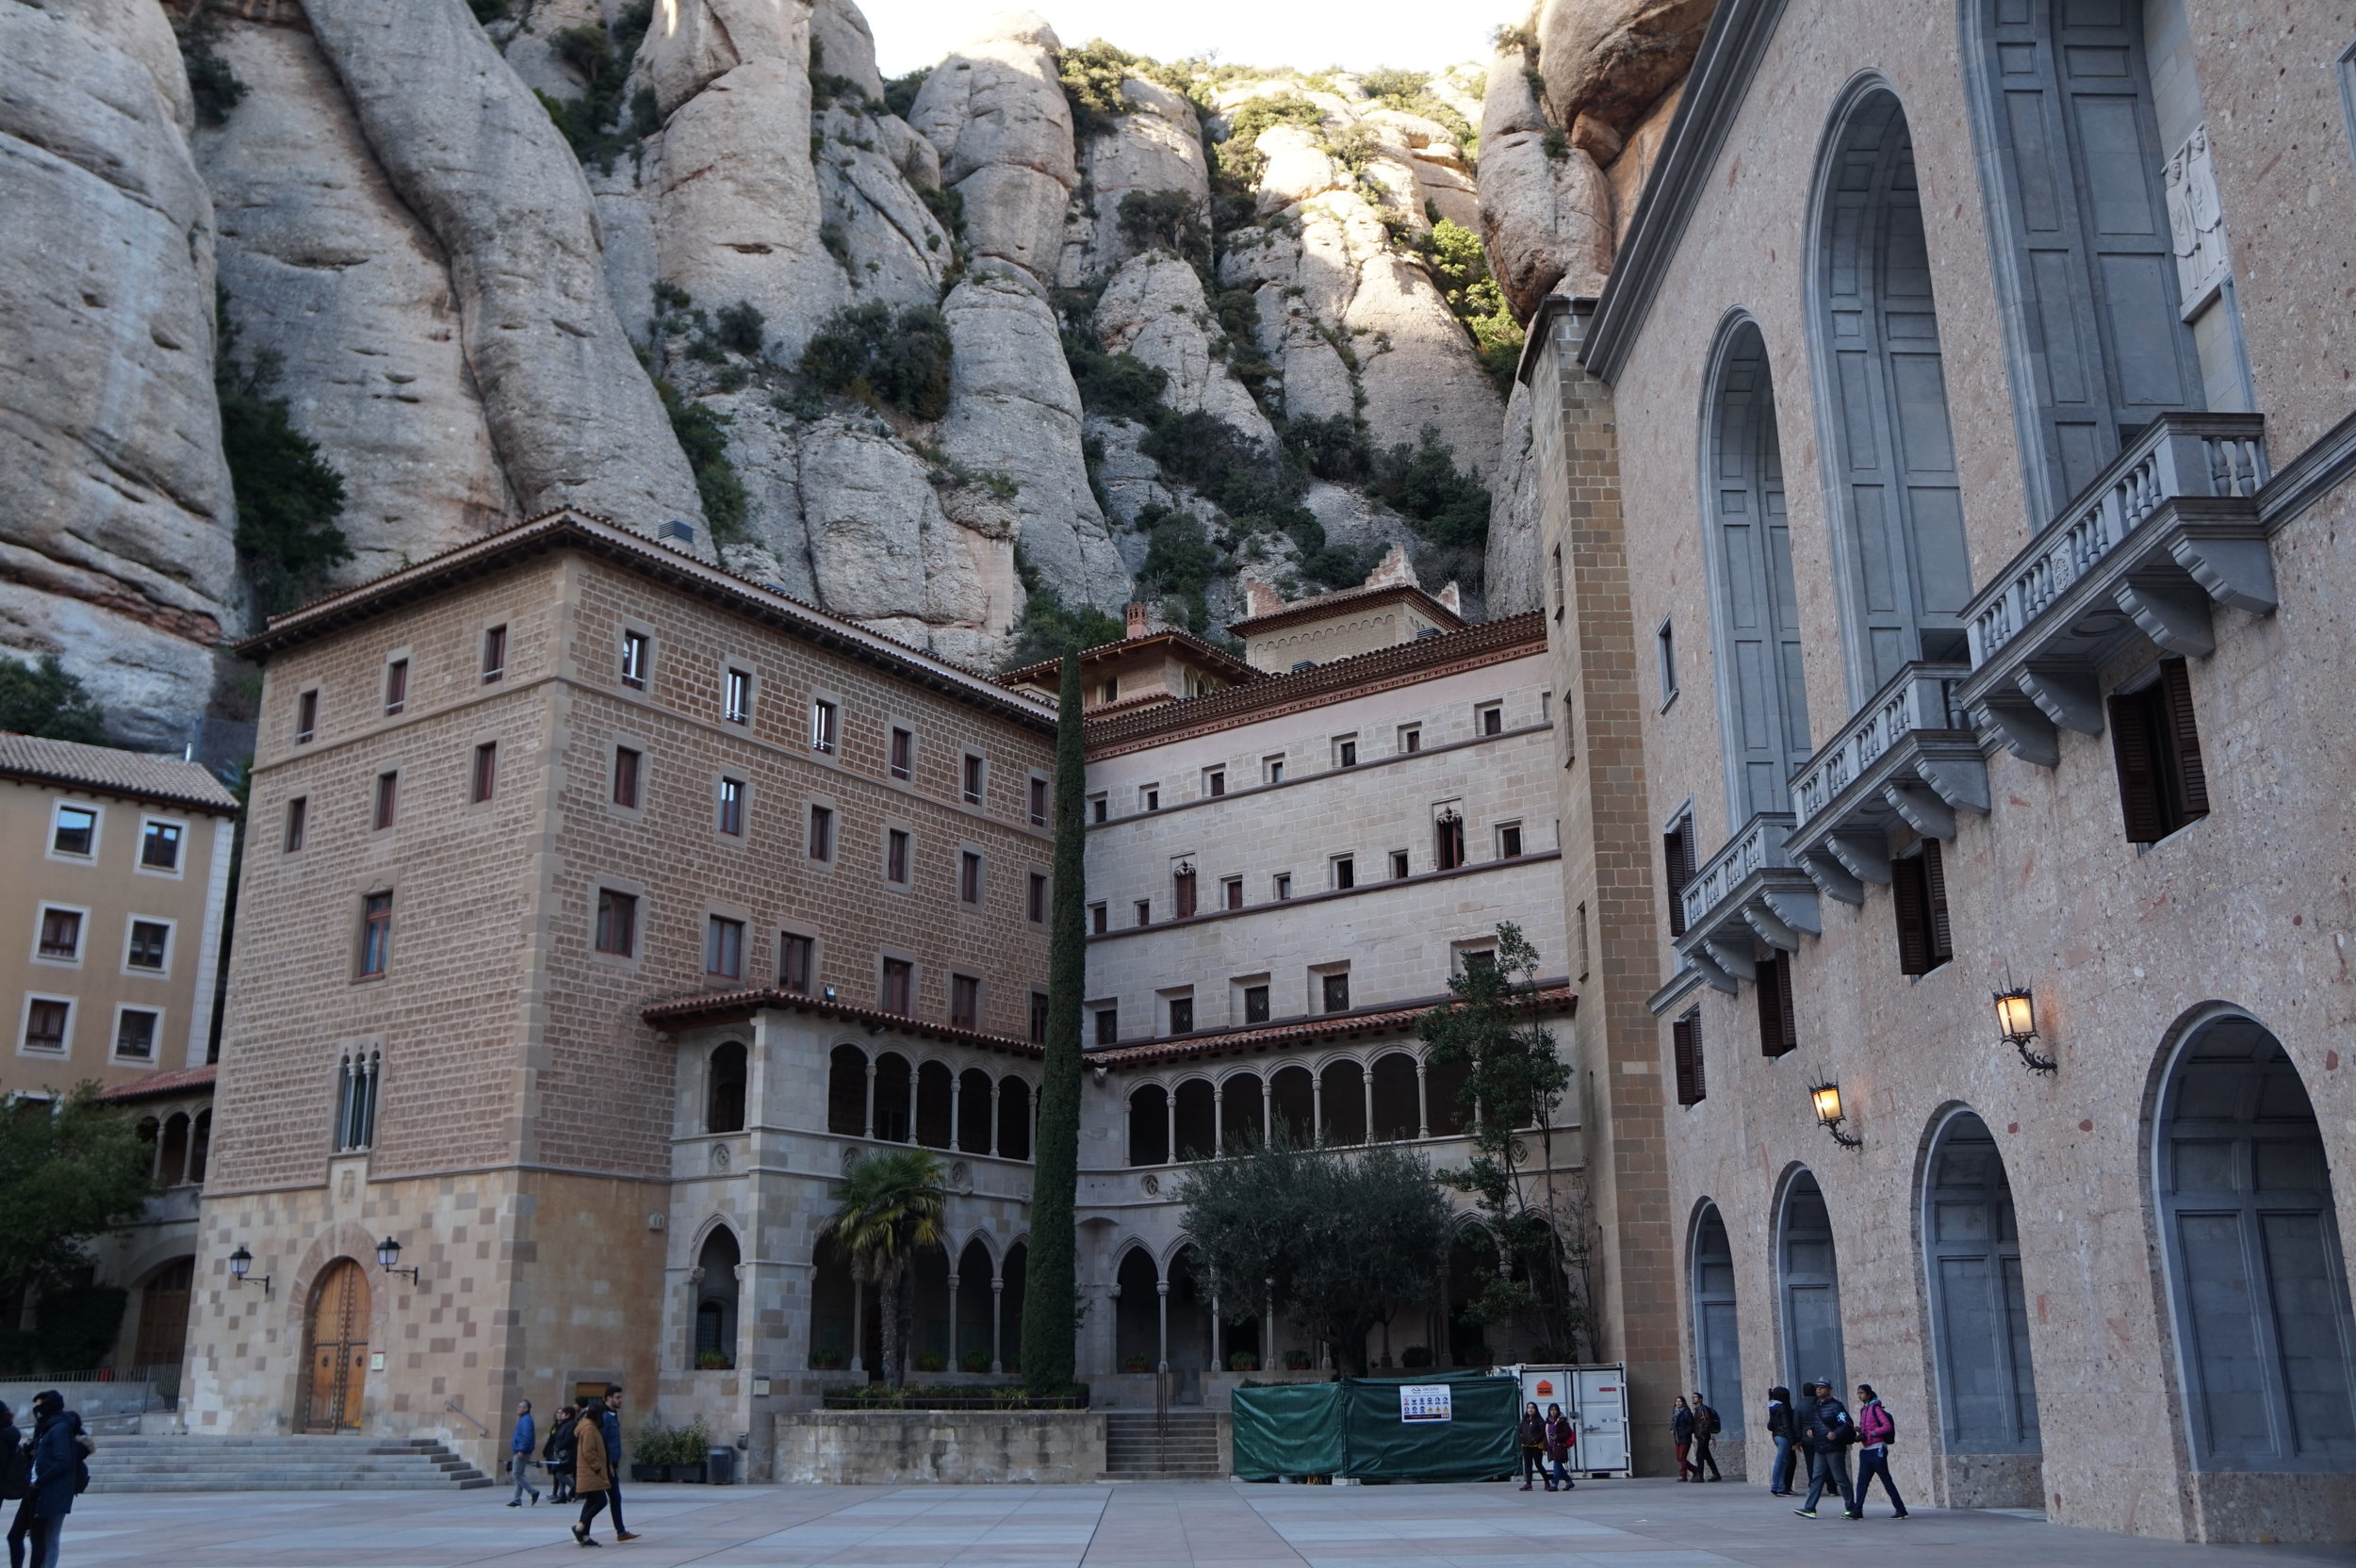 the entrance to the  Santa Maria de Montserrat  abbey - you can see the 'serrated' mountain formation in the background